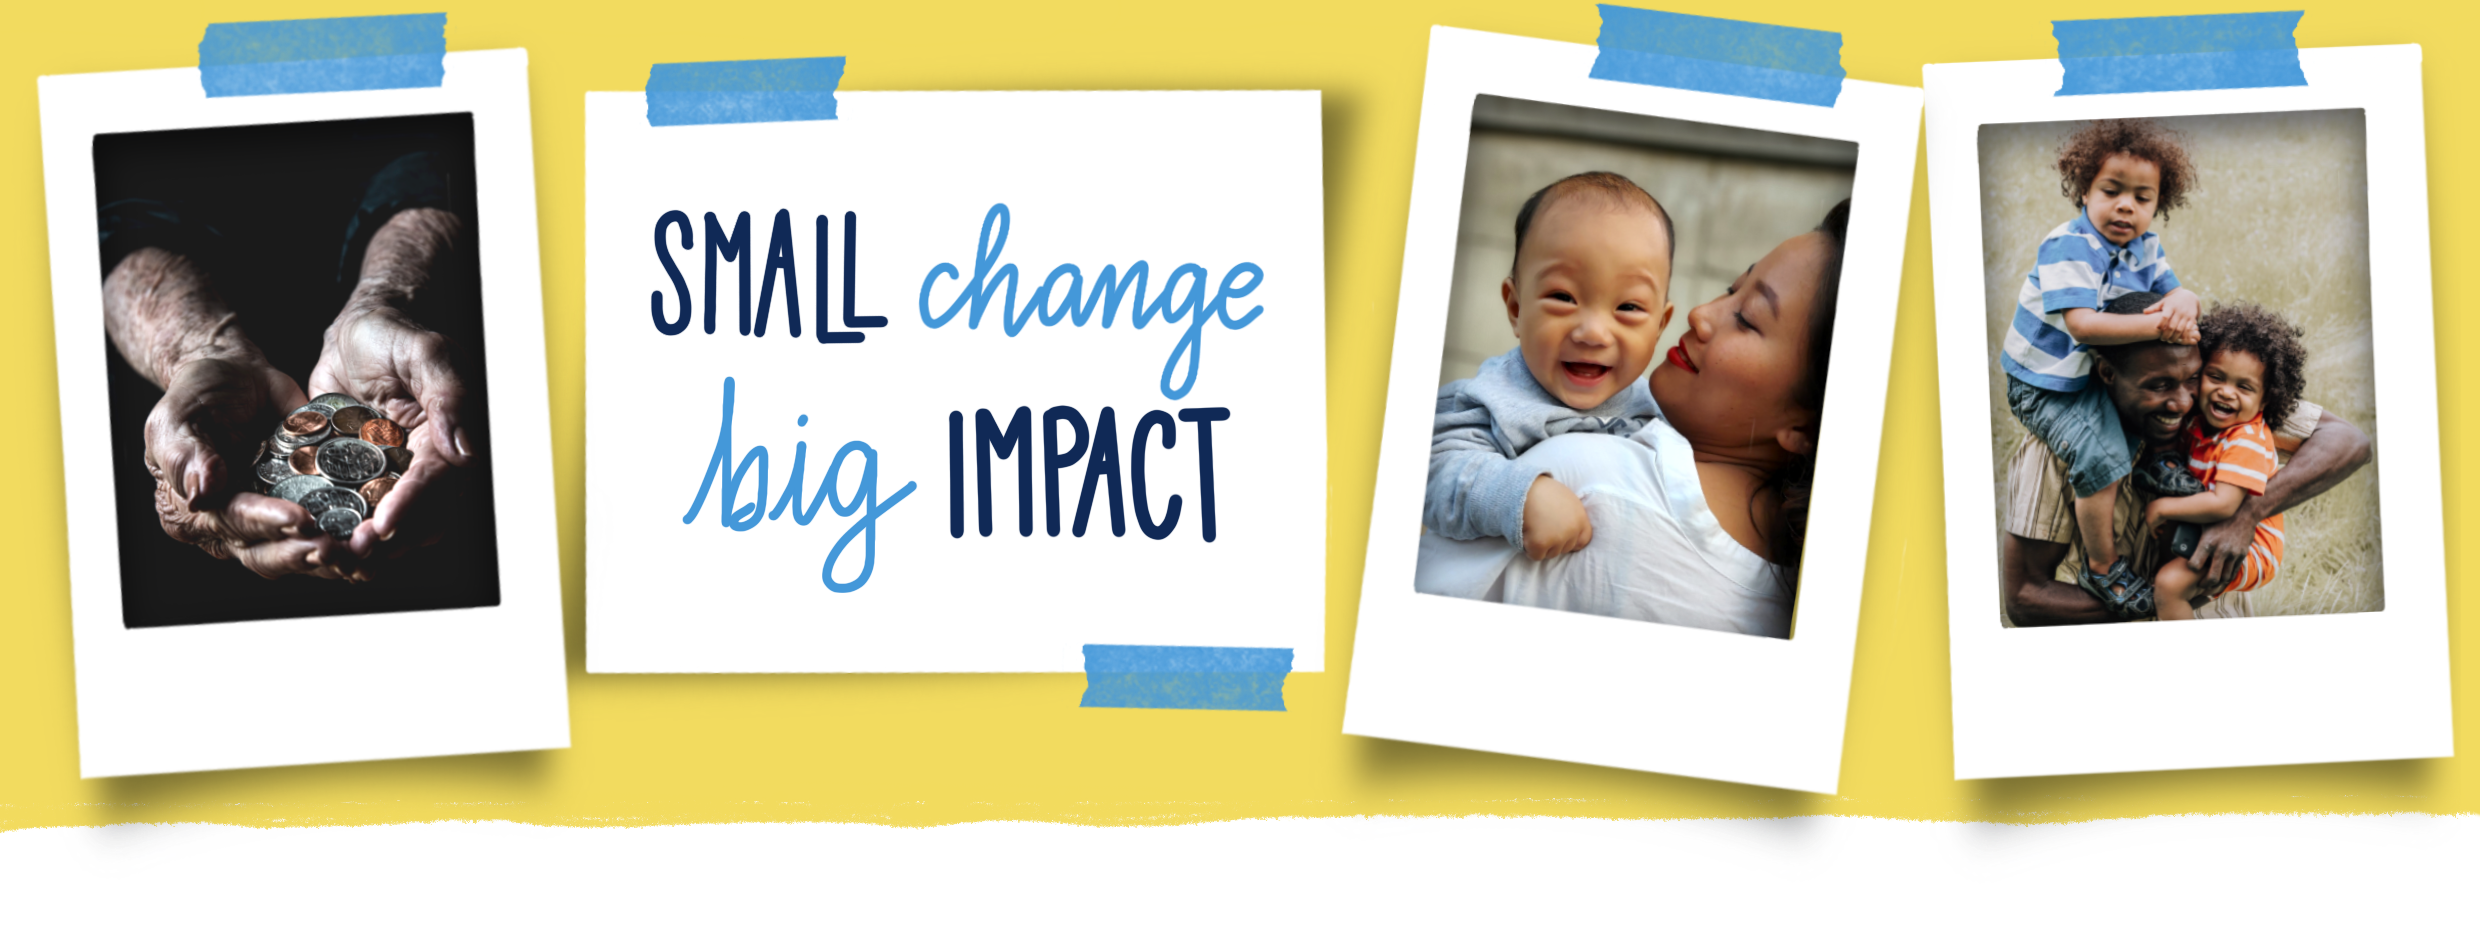 """Banner image with a sticky note saying """"Small change, big impact"""" surrounded by three polaroid photos. 1 shows hands holding coins and the others are family images"""